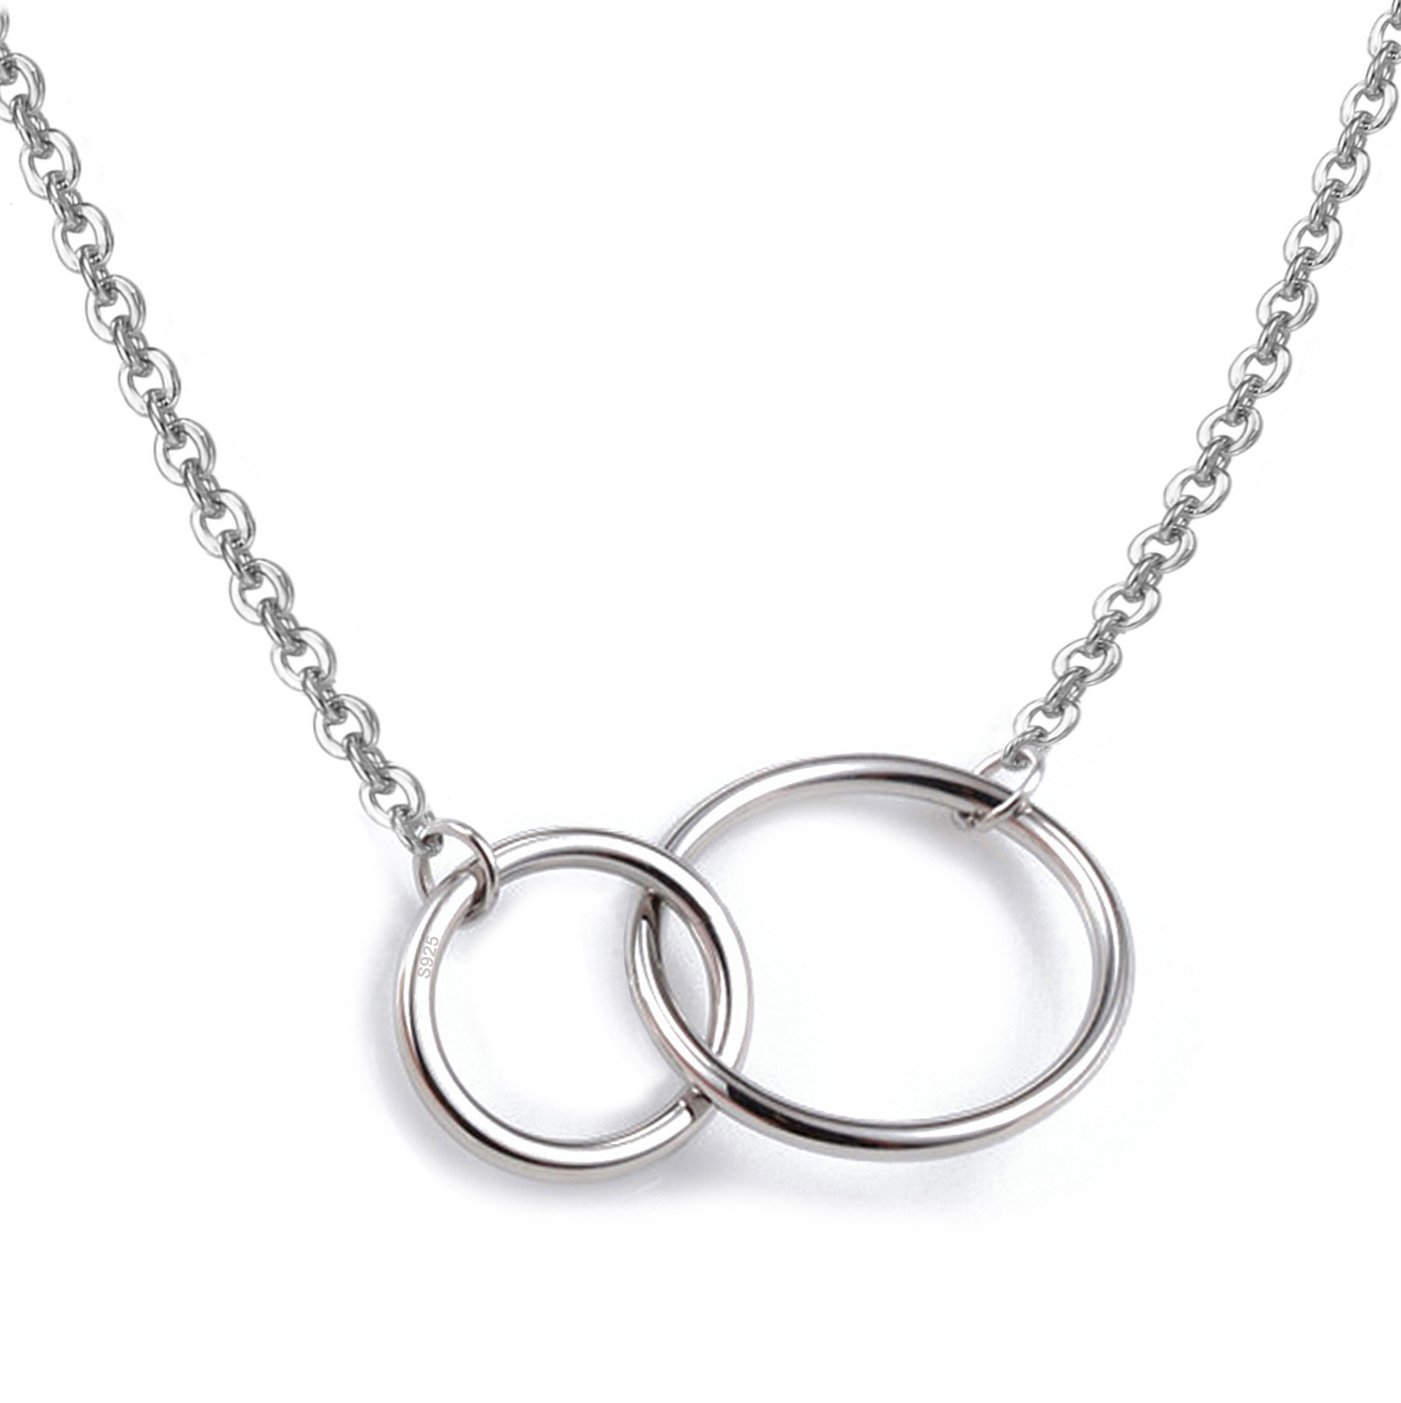 925 Sterling Silver Necklace with Interlocking Two-Circles Pendant Necklace, 16''+2'' Extender